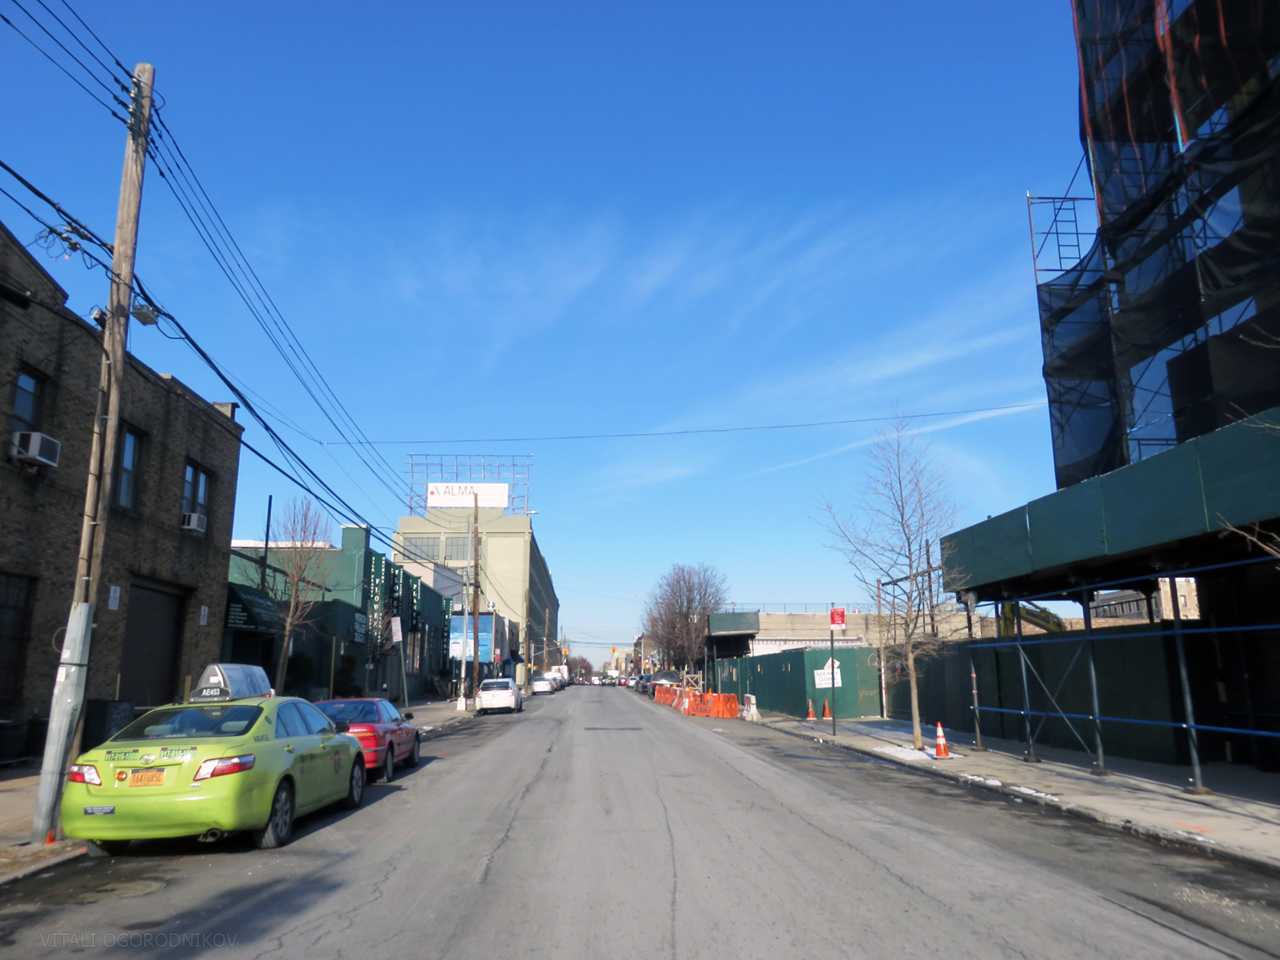 Looking northeast up 33rd Street. 37-21 32nd Street is on the left. 37-14 34th Street, 37-29 33rd Street, and 33-01 38th Avenue are on the right.